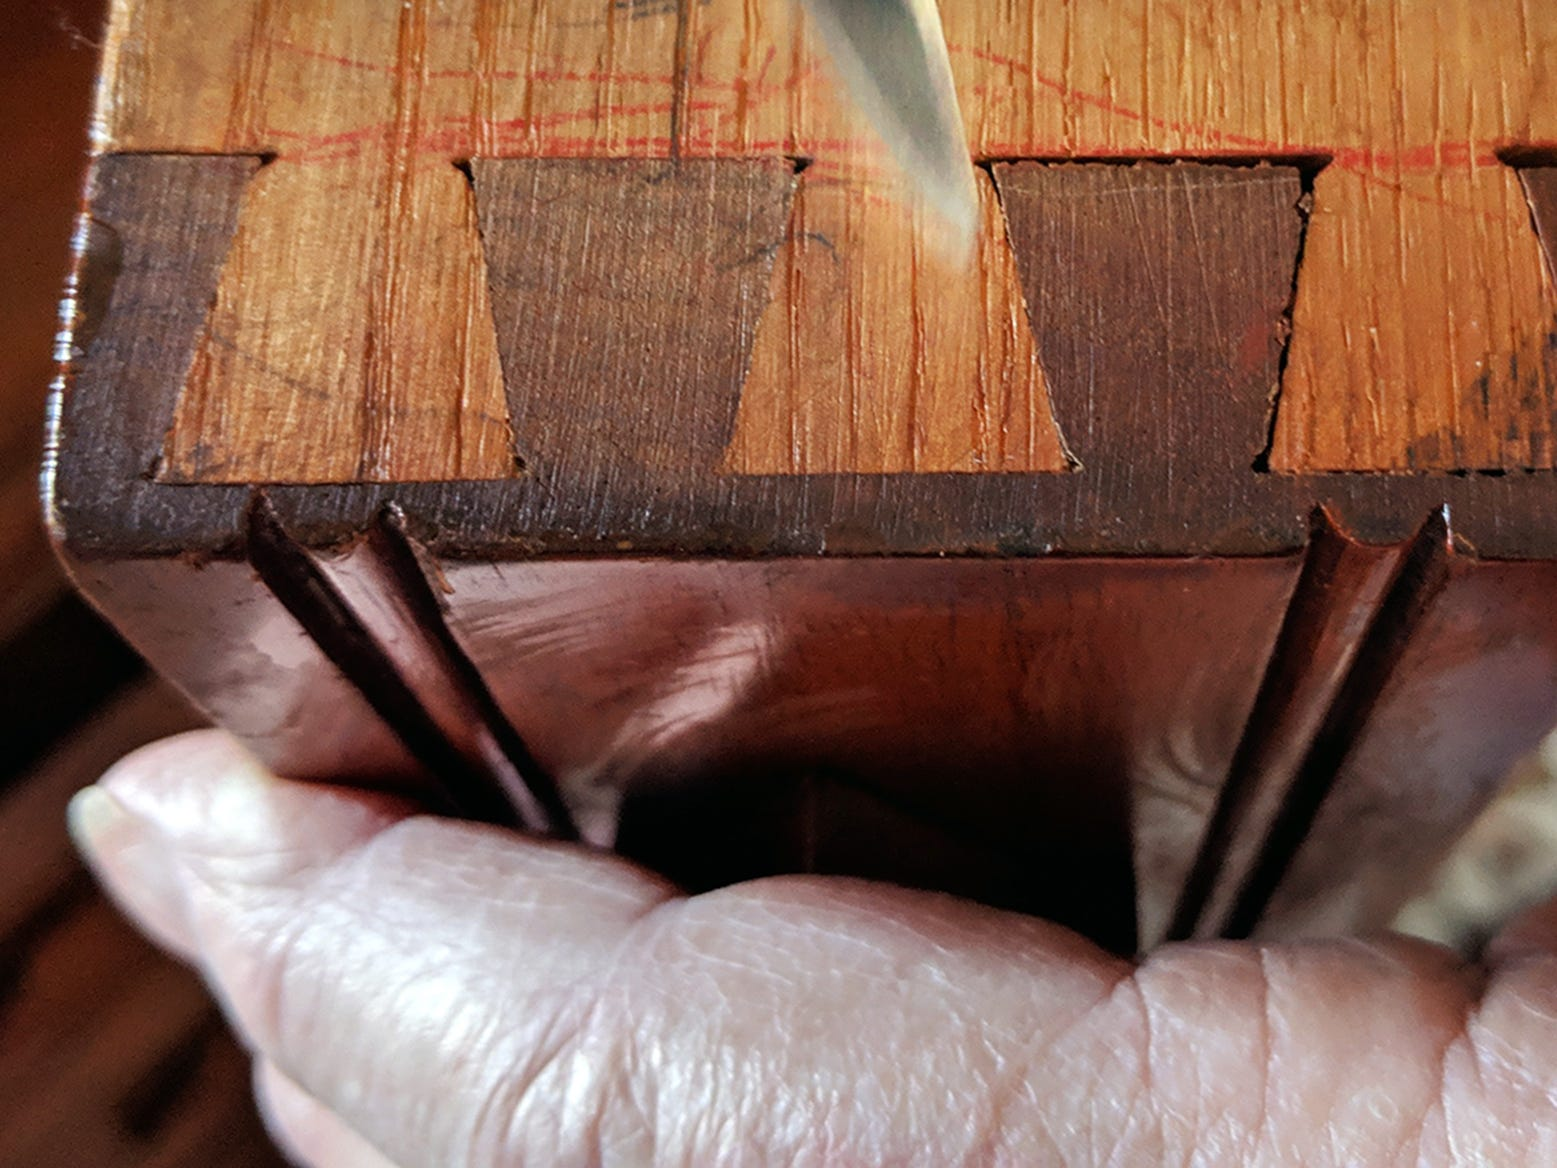 John McHenry holds one of the drawers showing the dovetail joints.